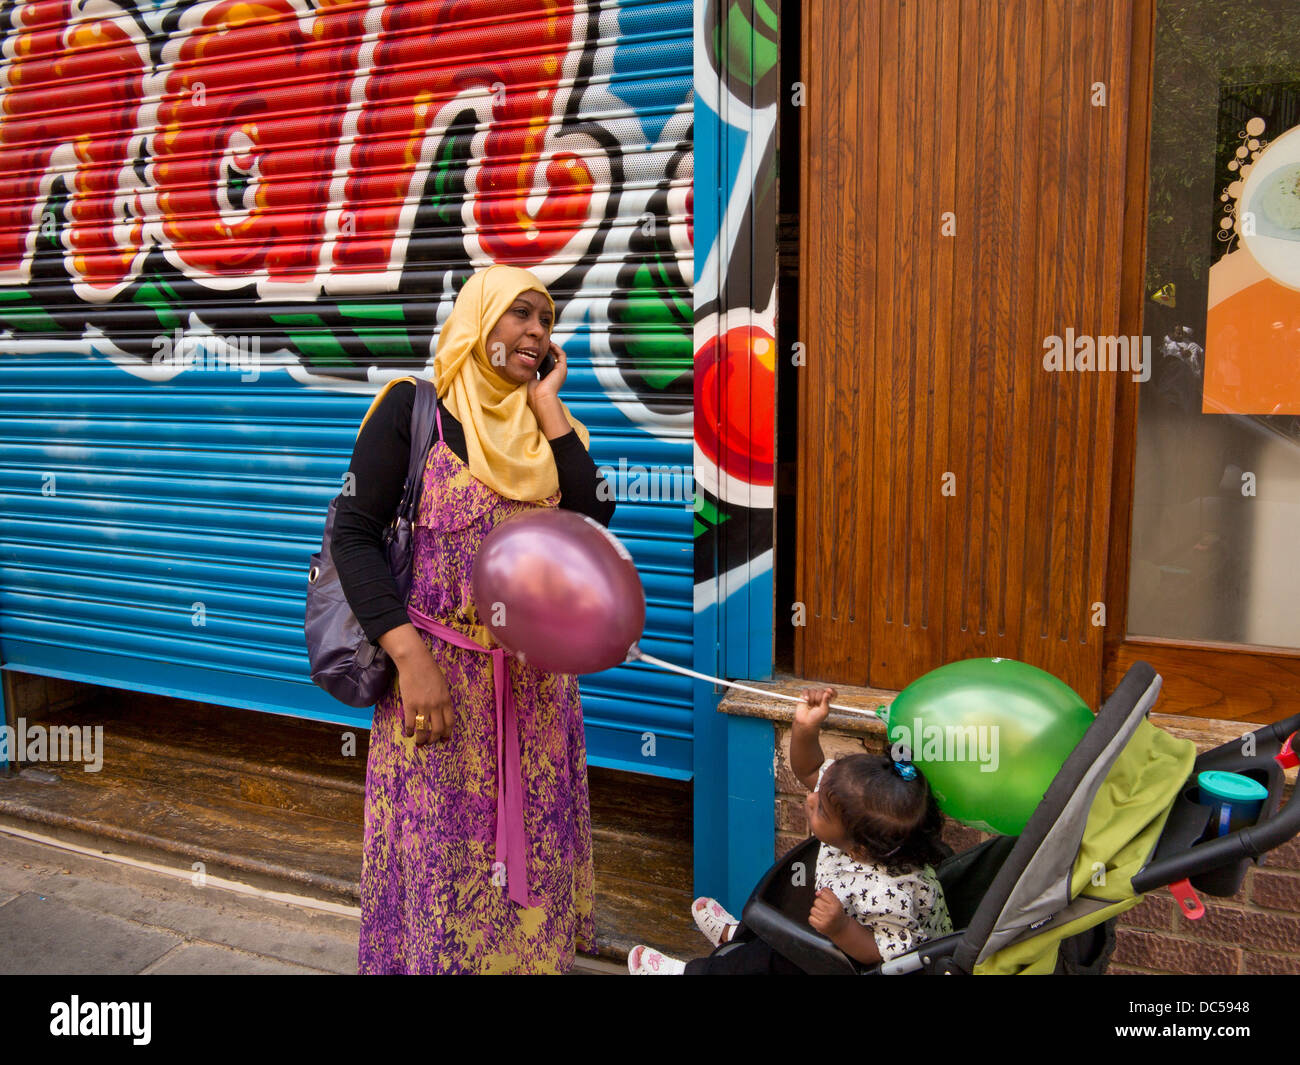 Muslim families celebrate Eid Mubarak, at the end of Ramadan, by the East London Mosque in Whitechapel. - Stock Image